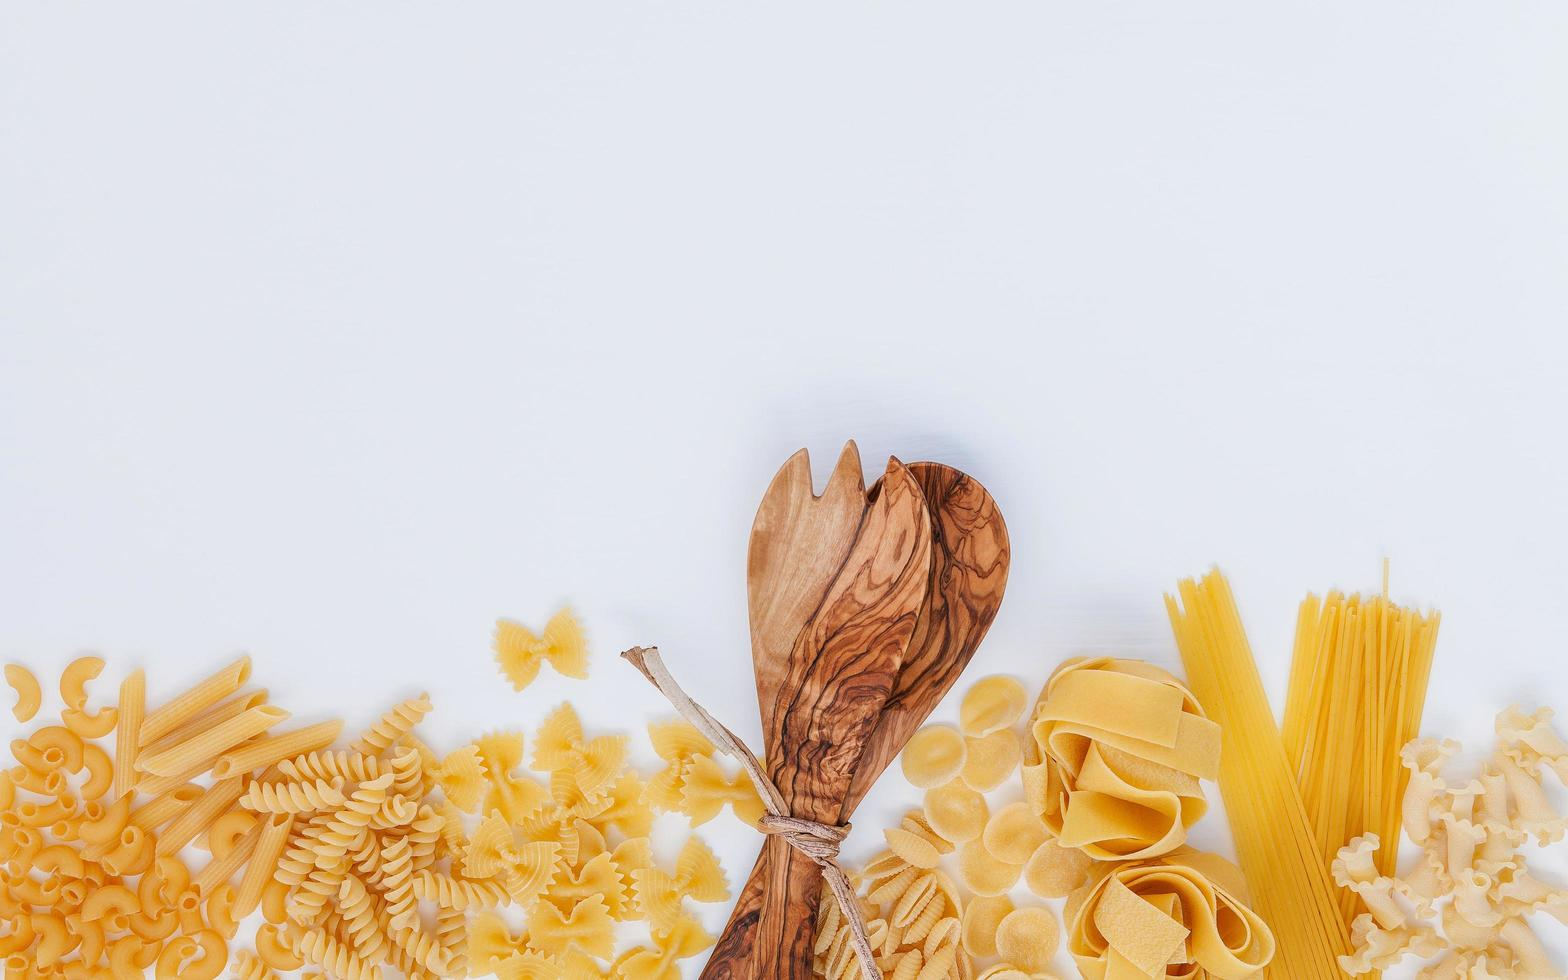 Pasta and a wooden utensil photo